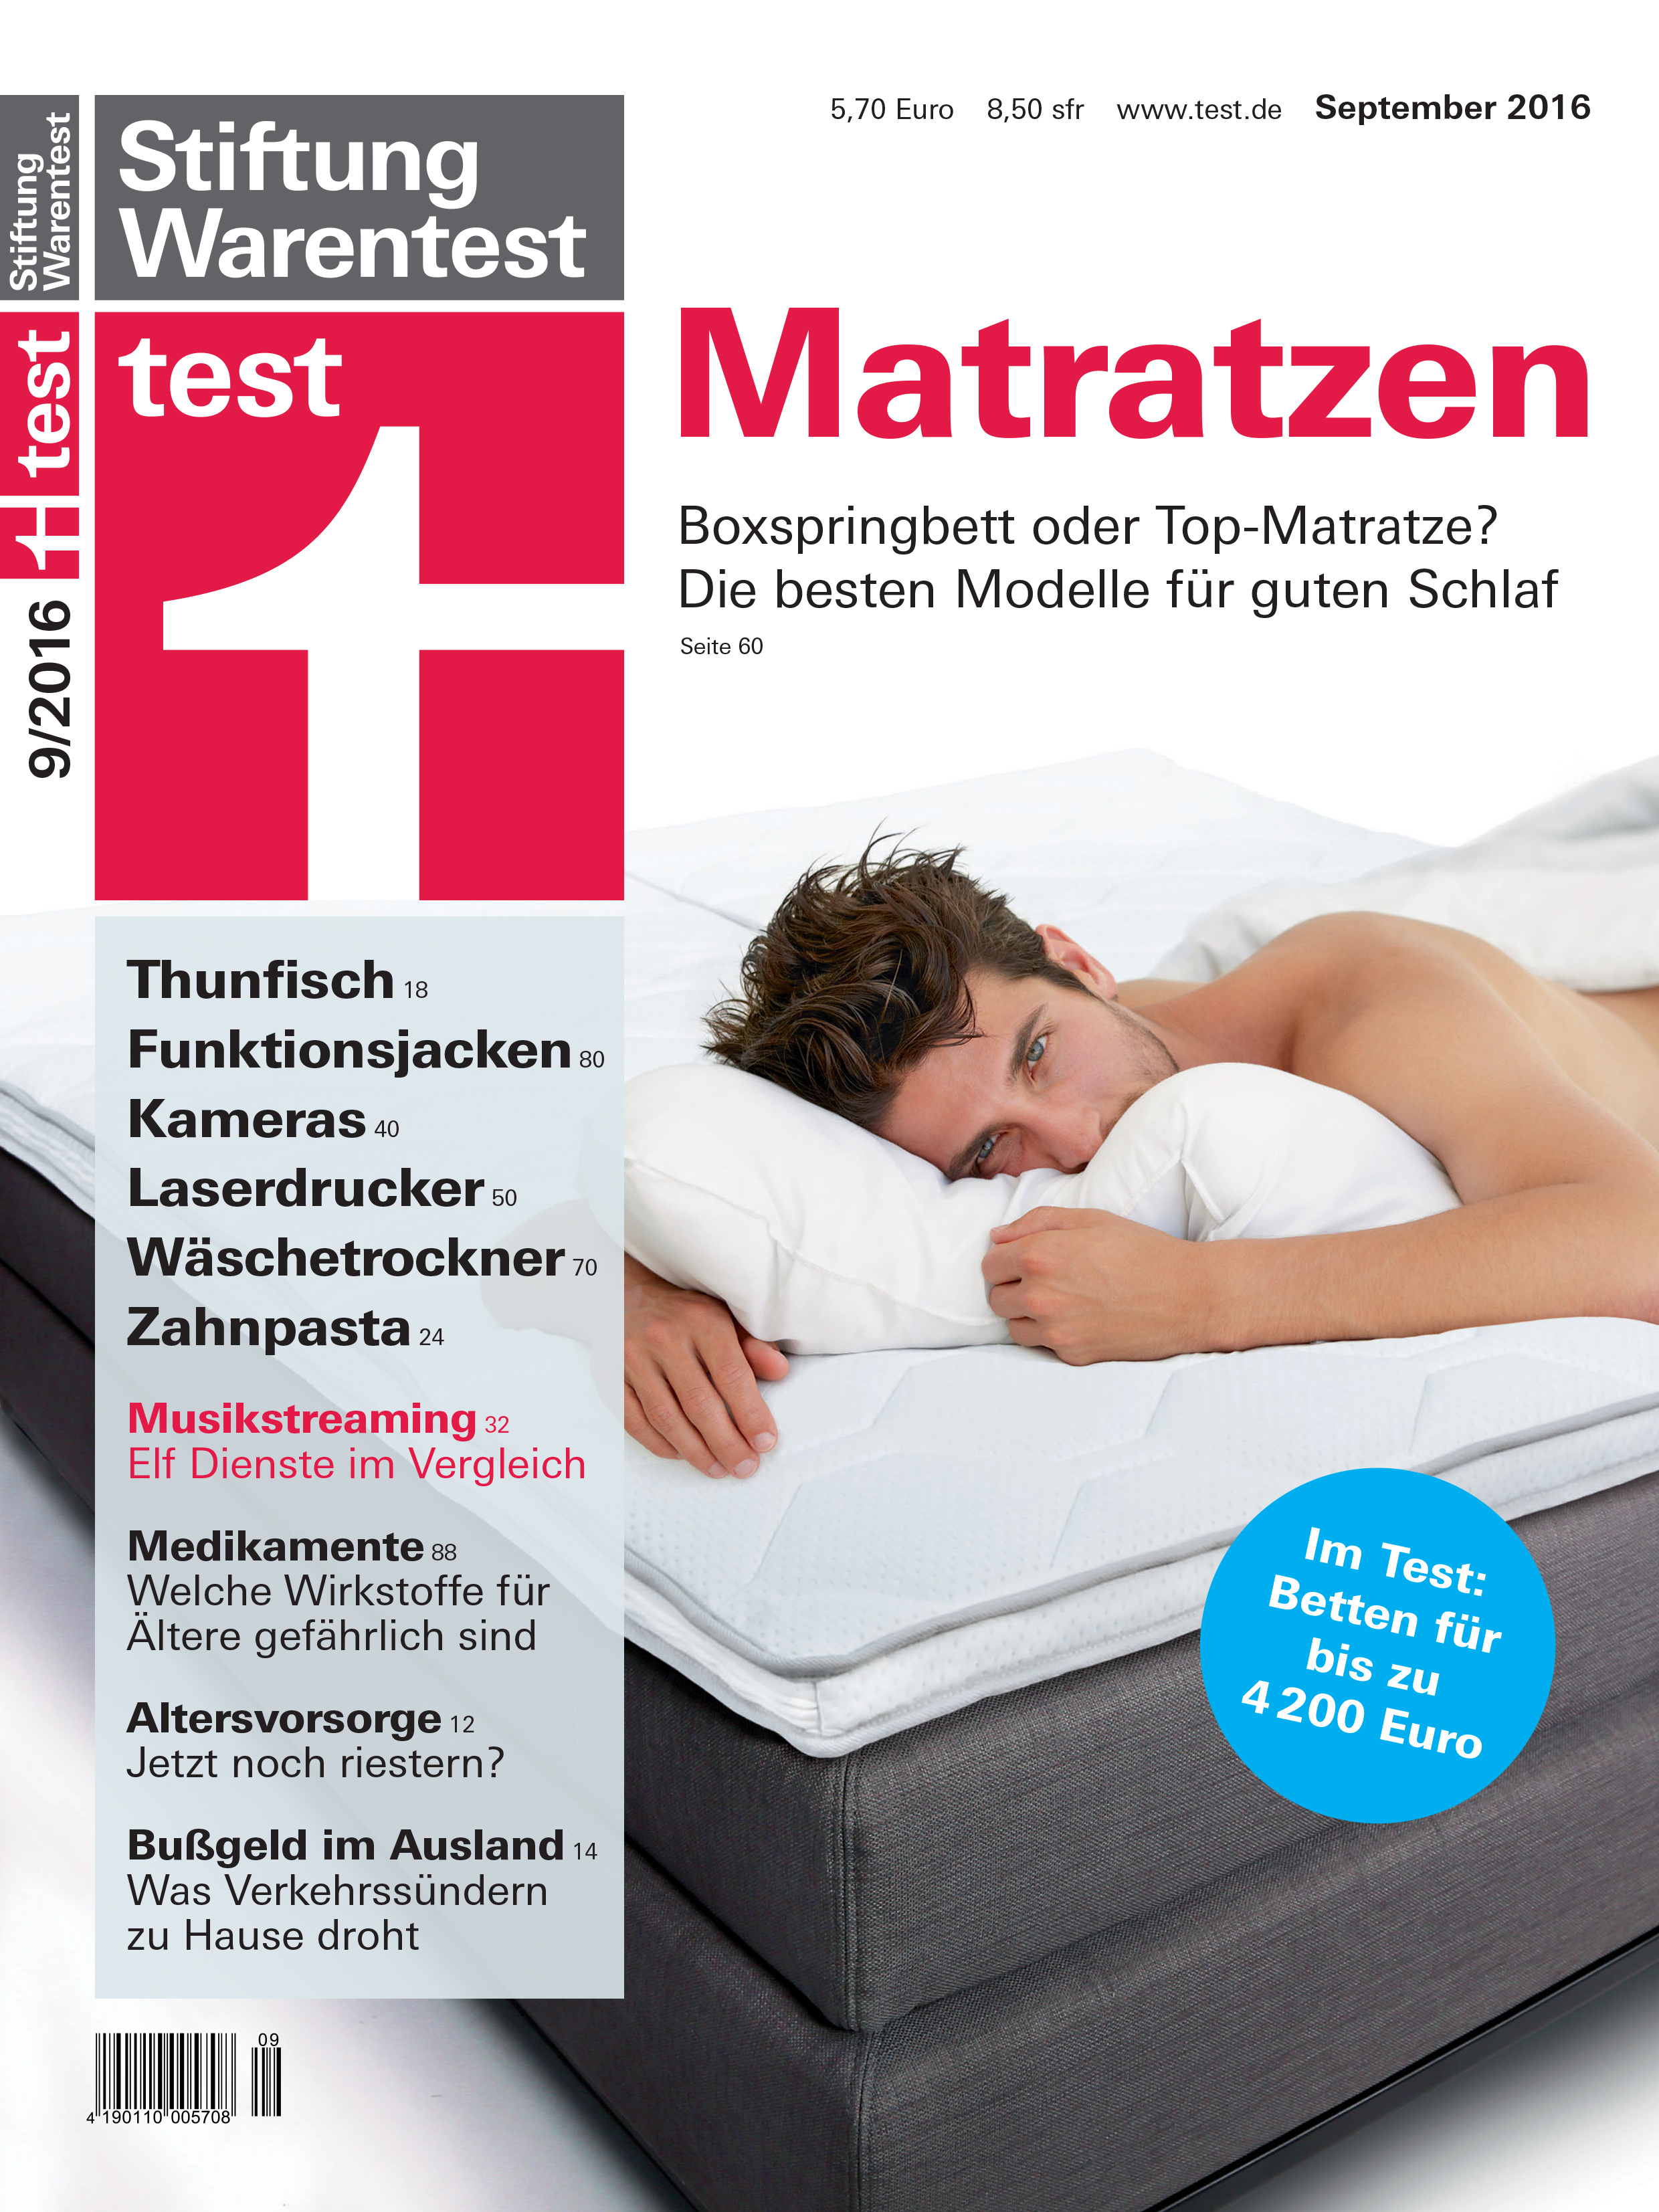 test 2016 von stiftung warentest boxspringbetten stiftung warentest. Black Bedroom Furniture Sets. Home Design Ideas